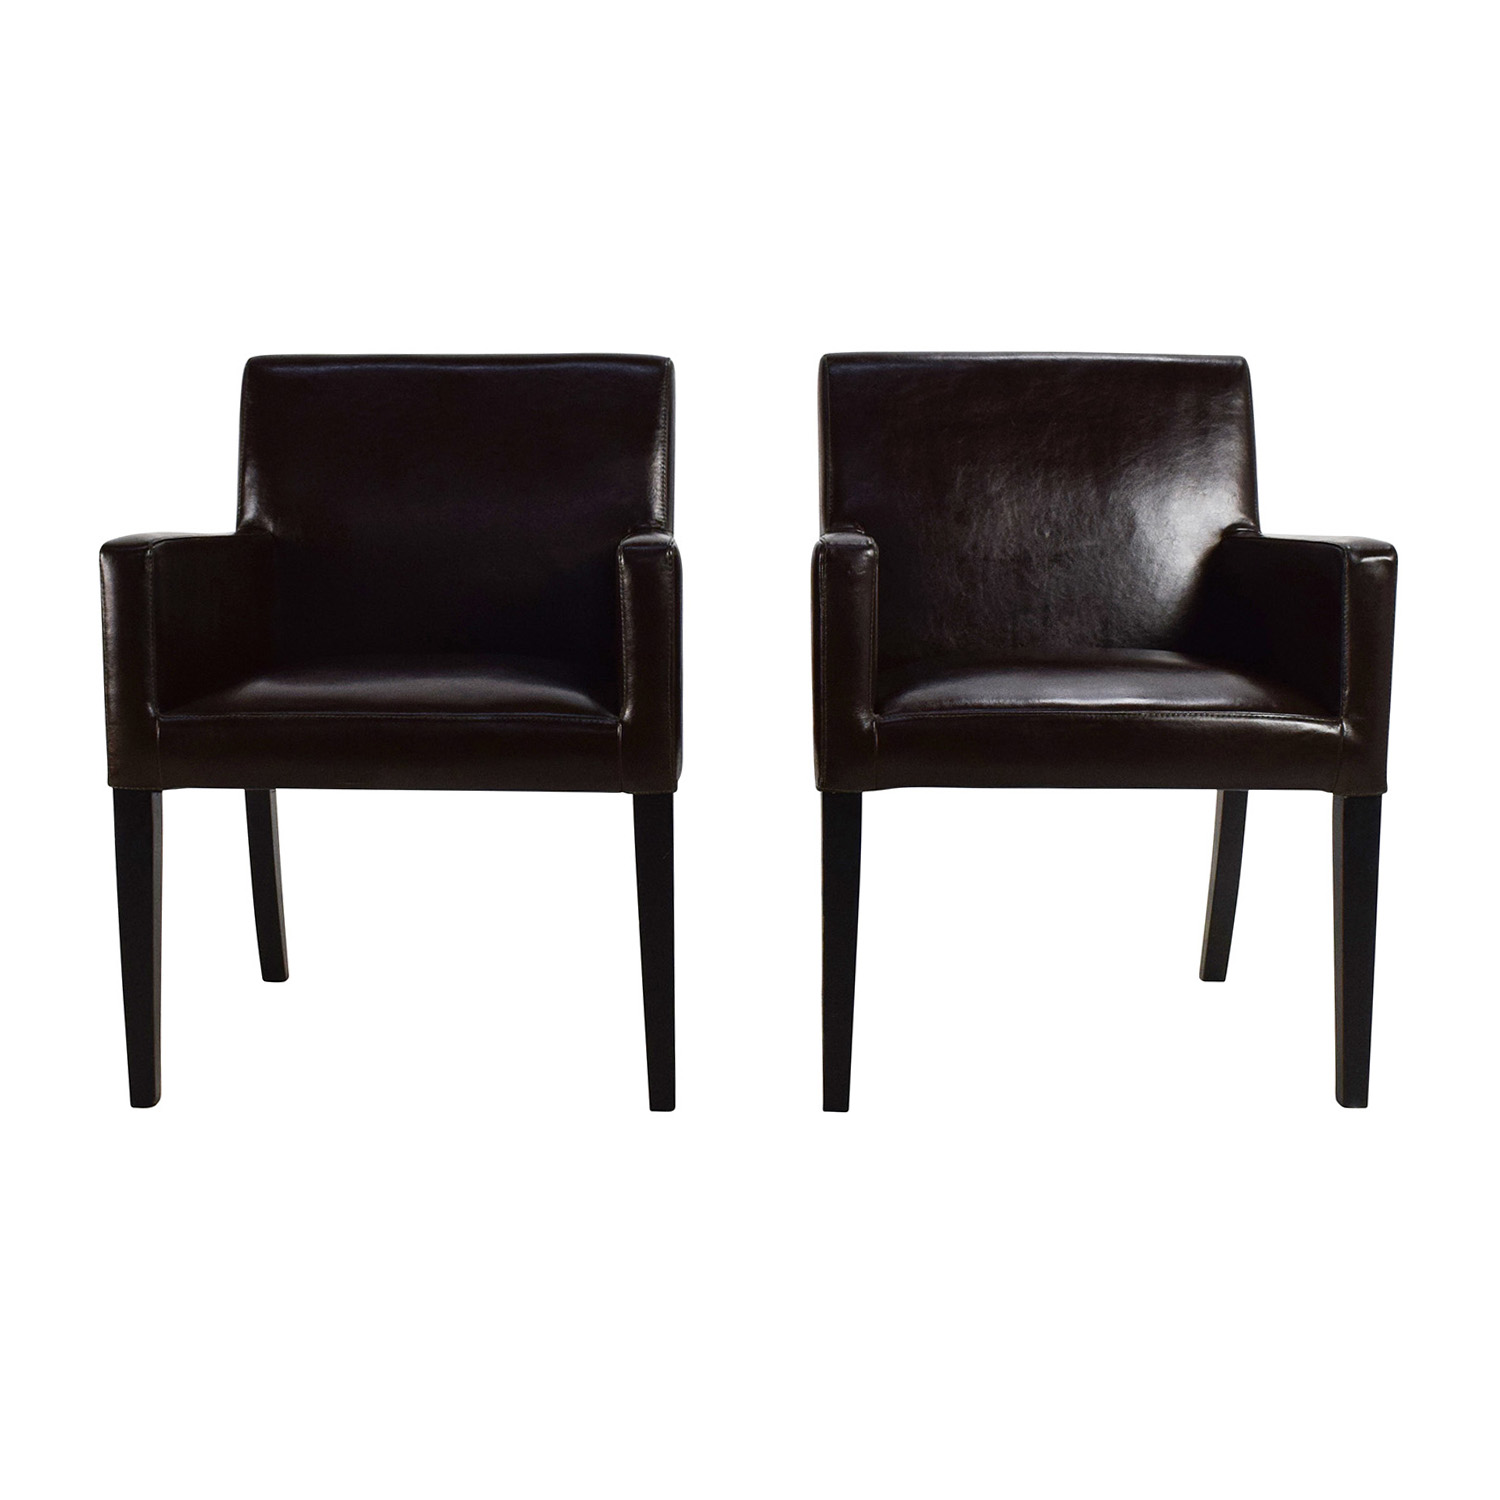 Black Leather Office Chairs on sale